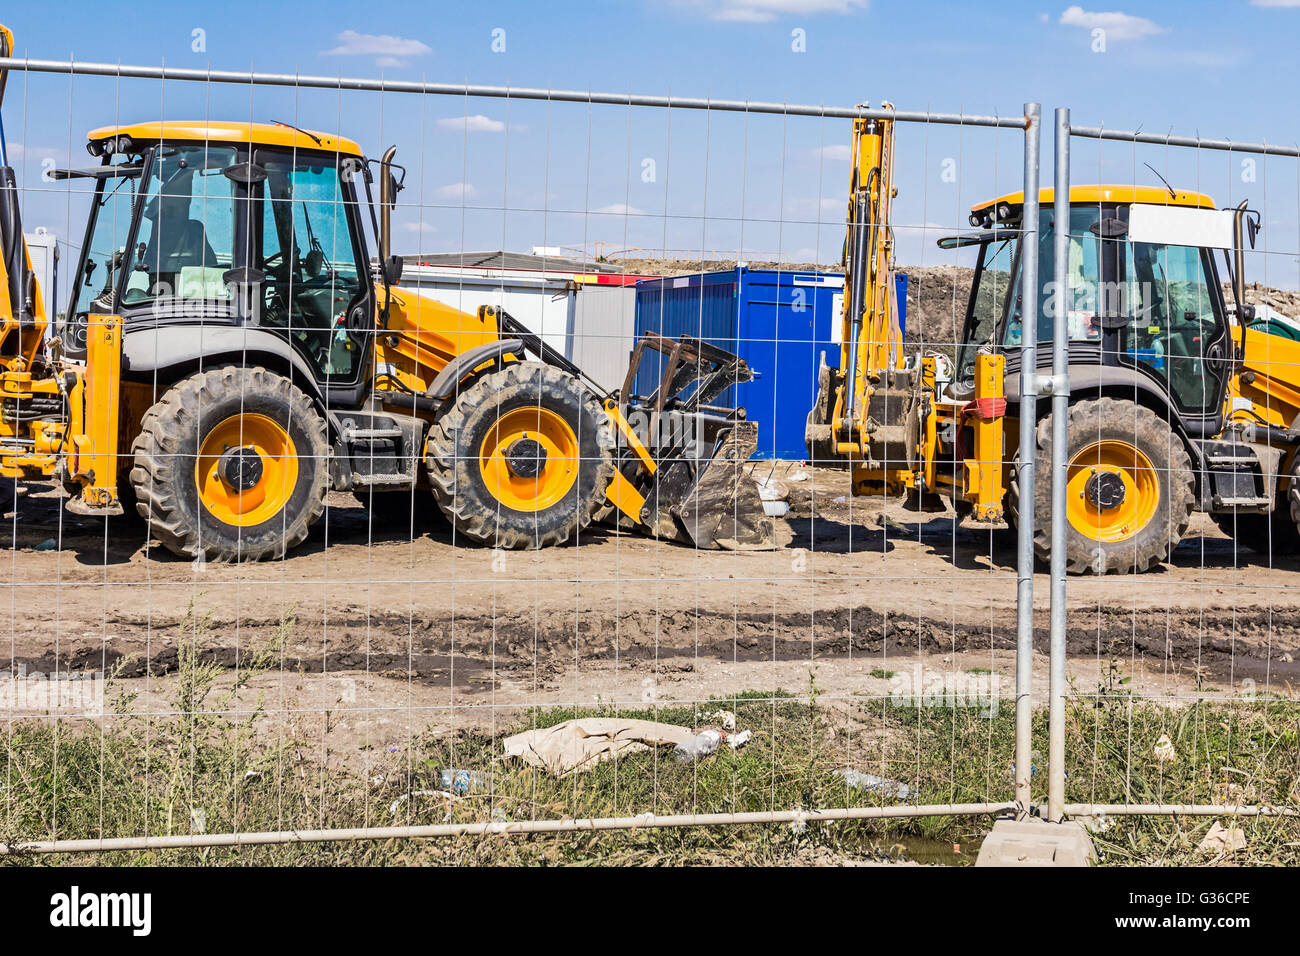 View on few excavators through a fence wire, parked at construction site. Stock Photo